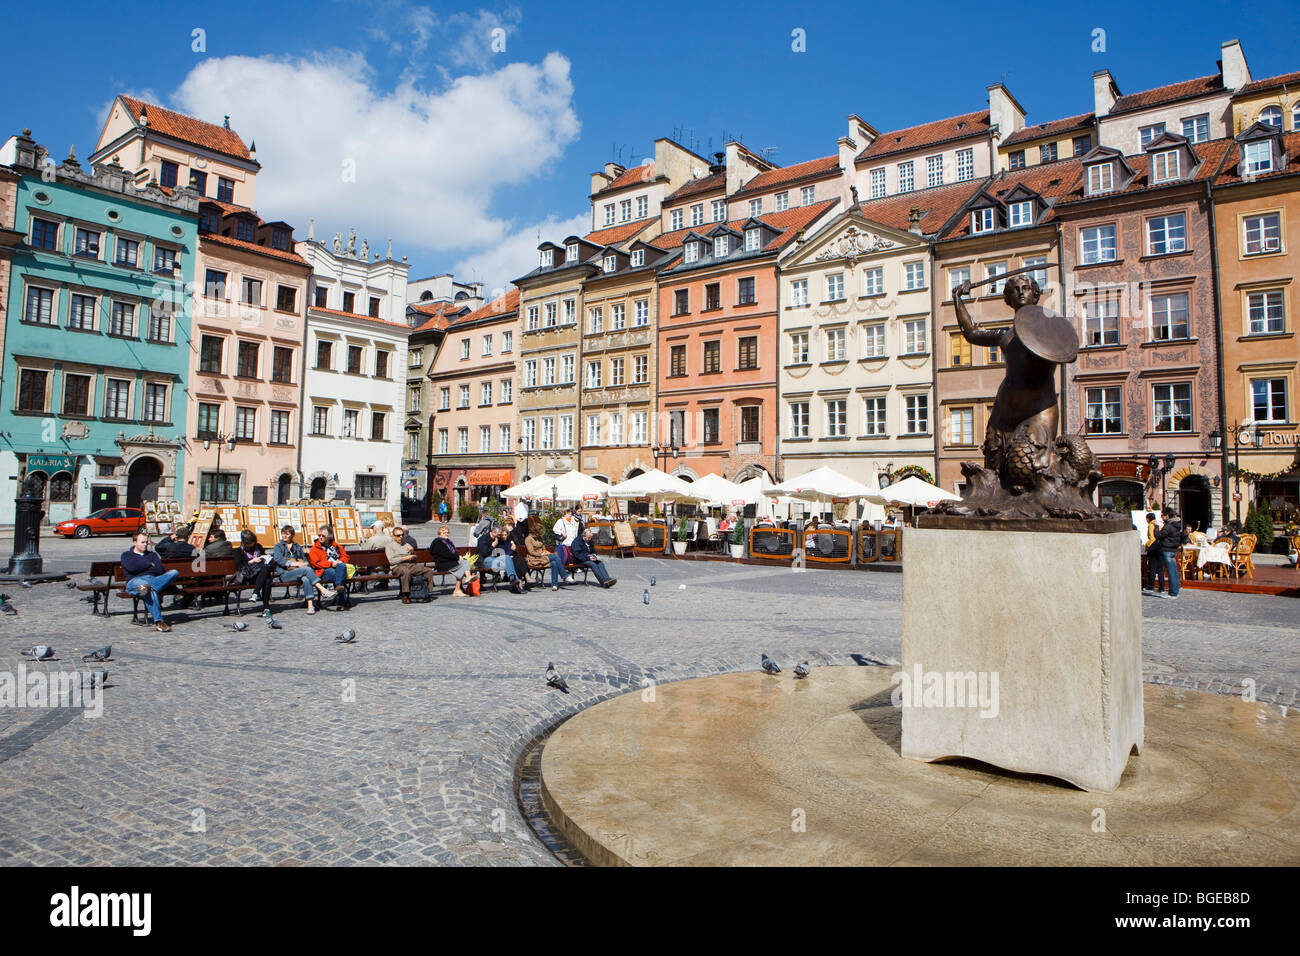 A statue on the square in Old Town, in Warsaw, Poland. - Stock Image